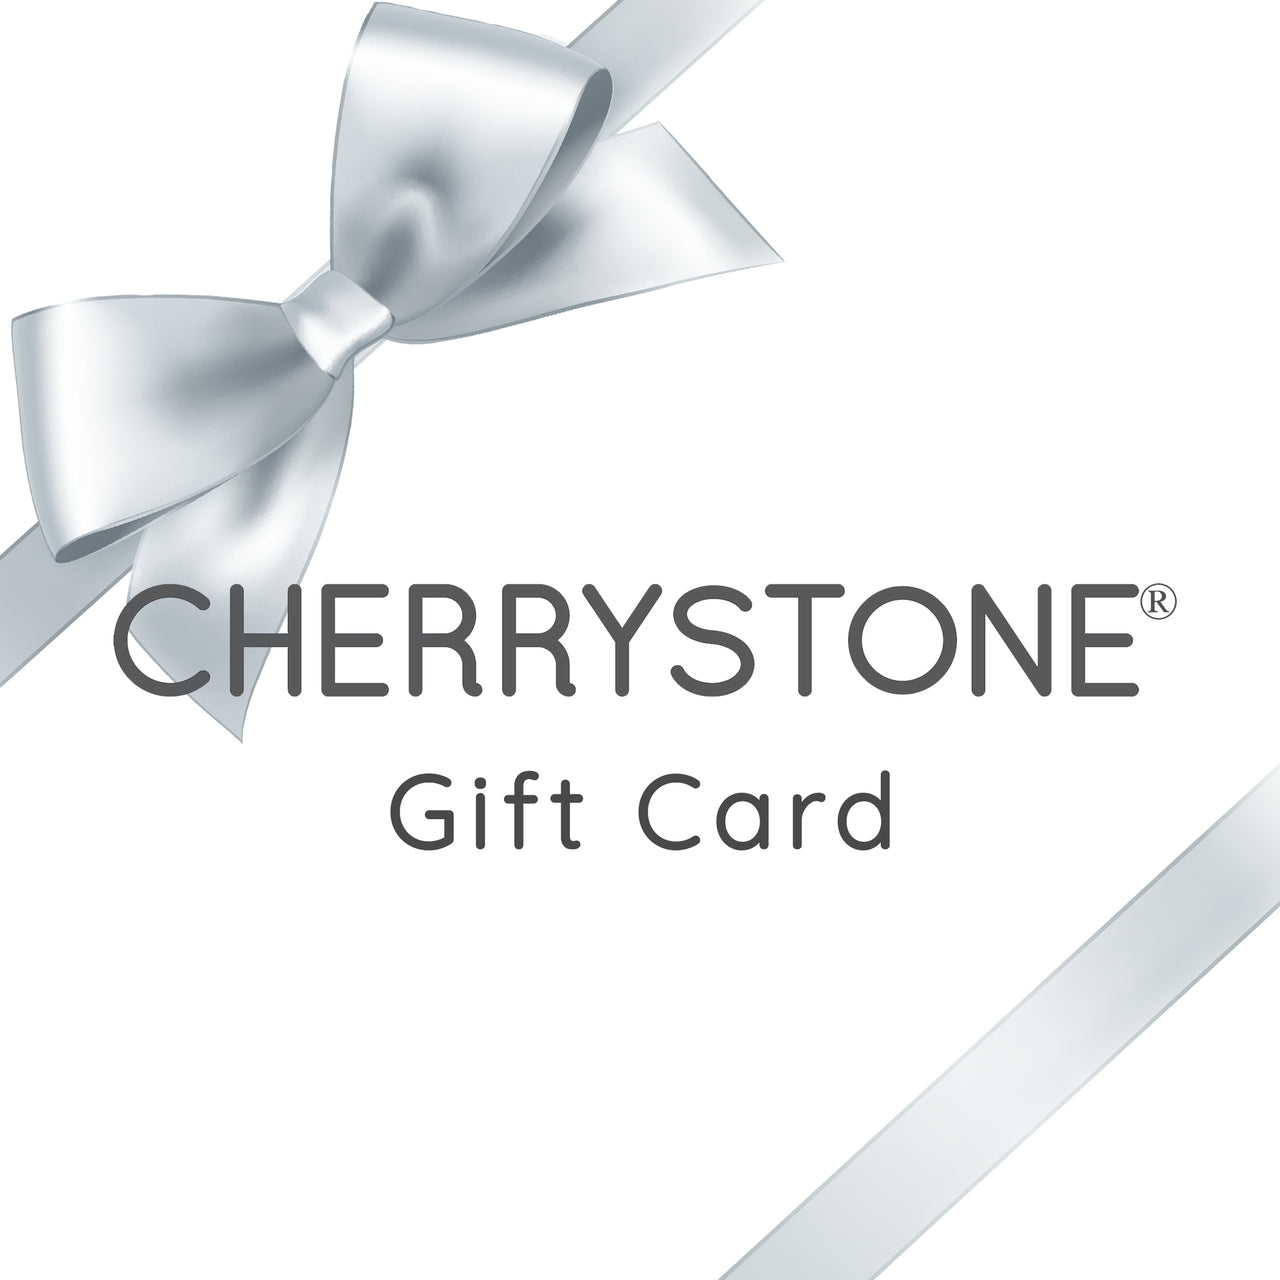 CHERRYSTONE Style Gift Card - CHERRYSTONE by MARKET TO JAPAN LLC